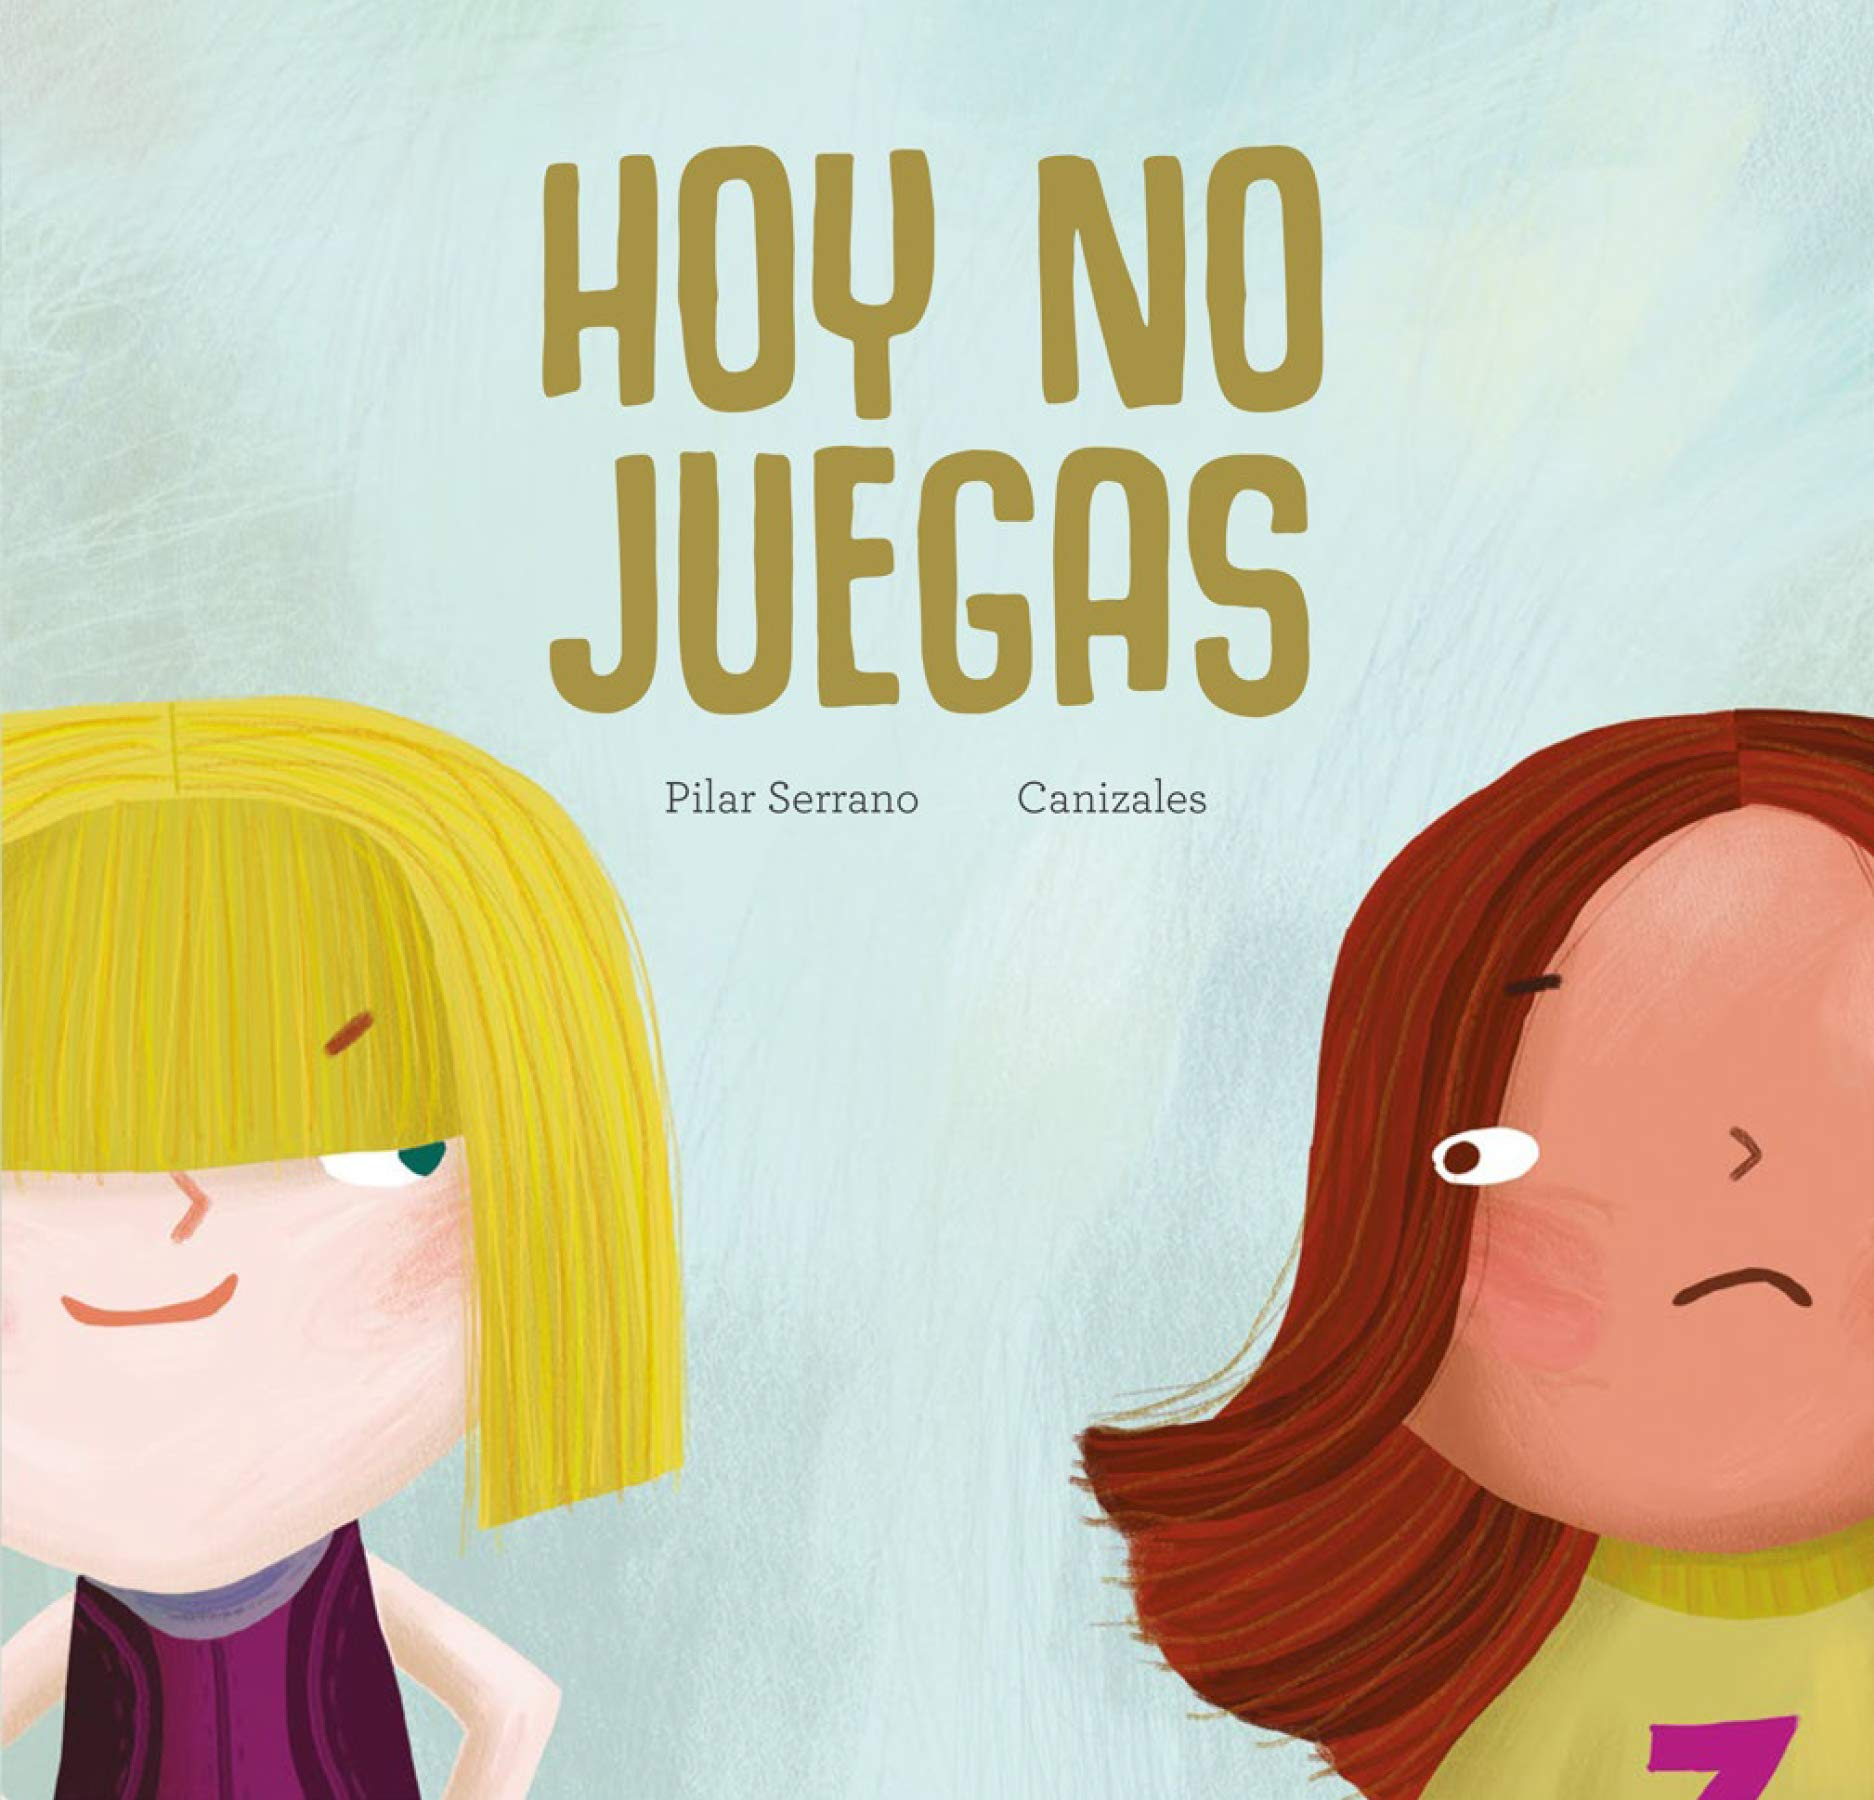 Hoy no juegas (Egalité) (Spanish Edition) (Spanish) Hardcover – April 30, 2019